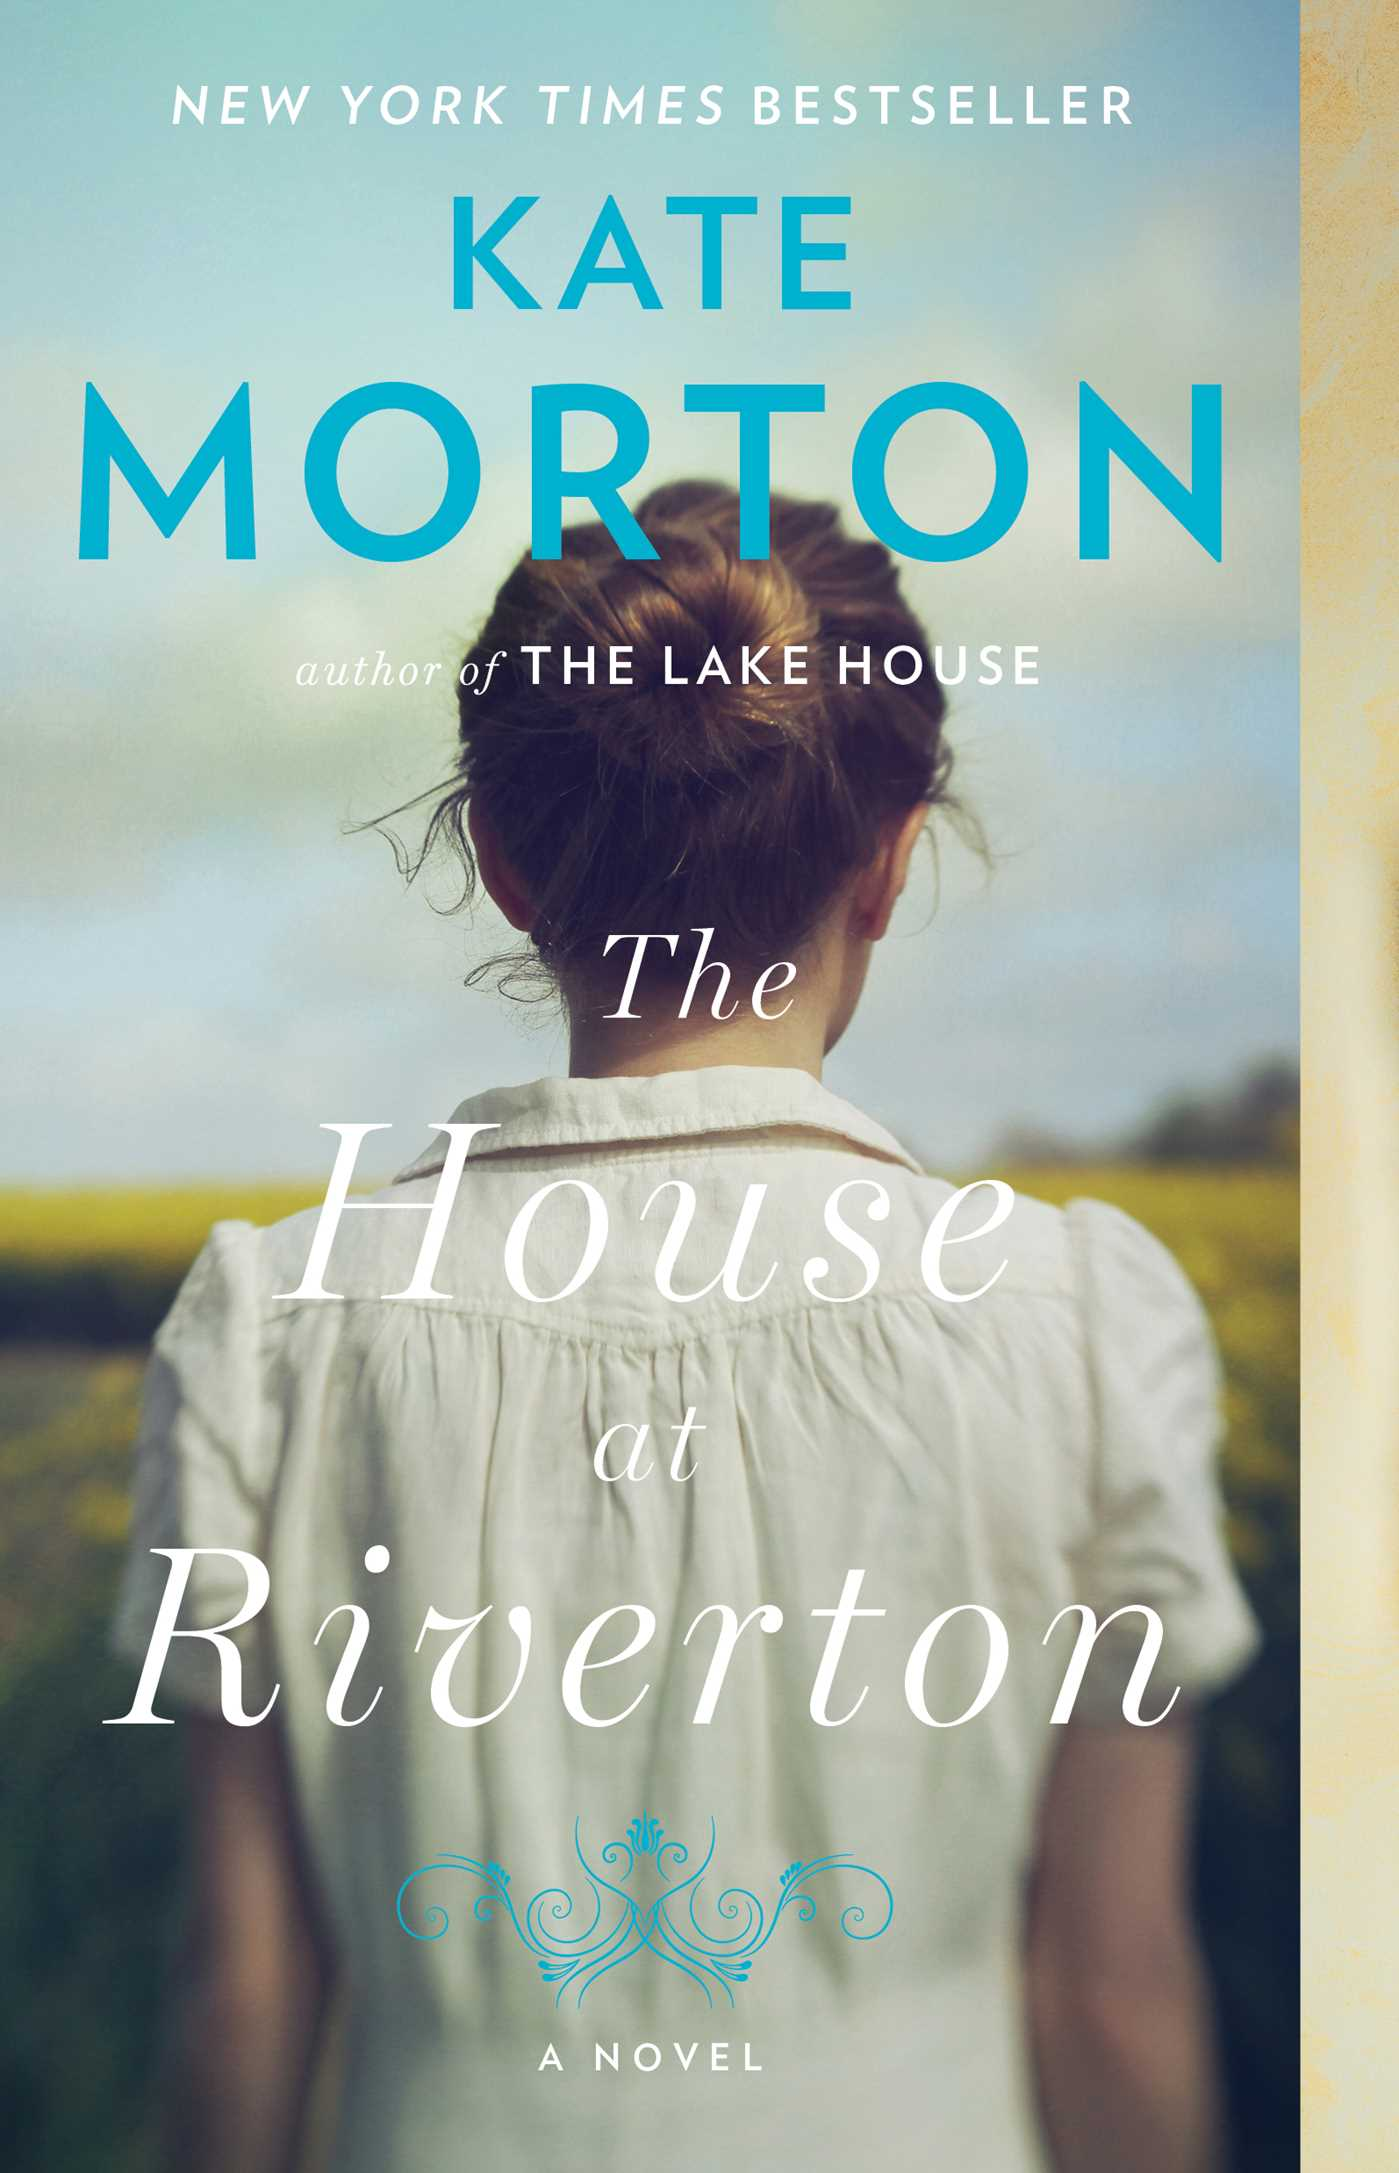 Kate Morton – The official site of bestselling author Kate Morton